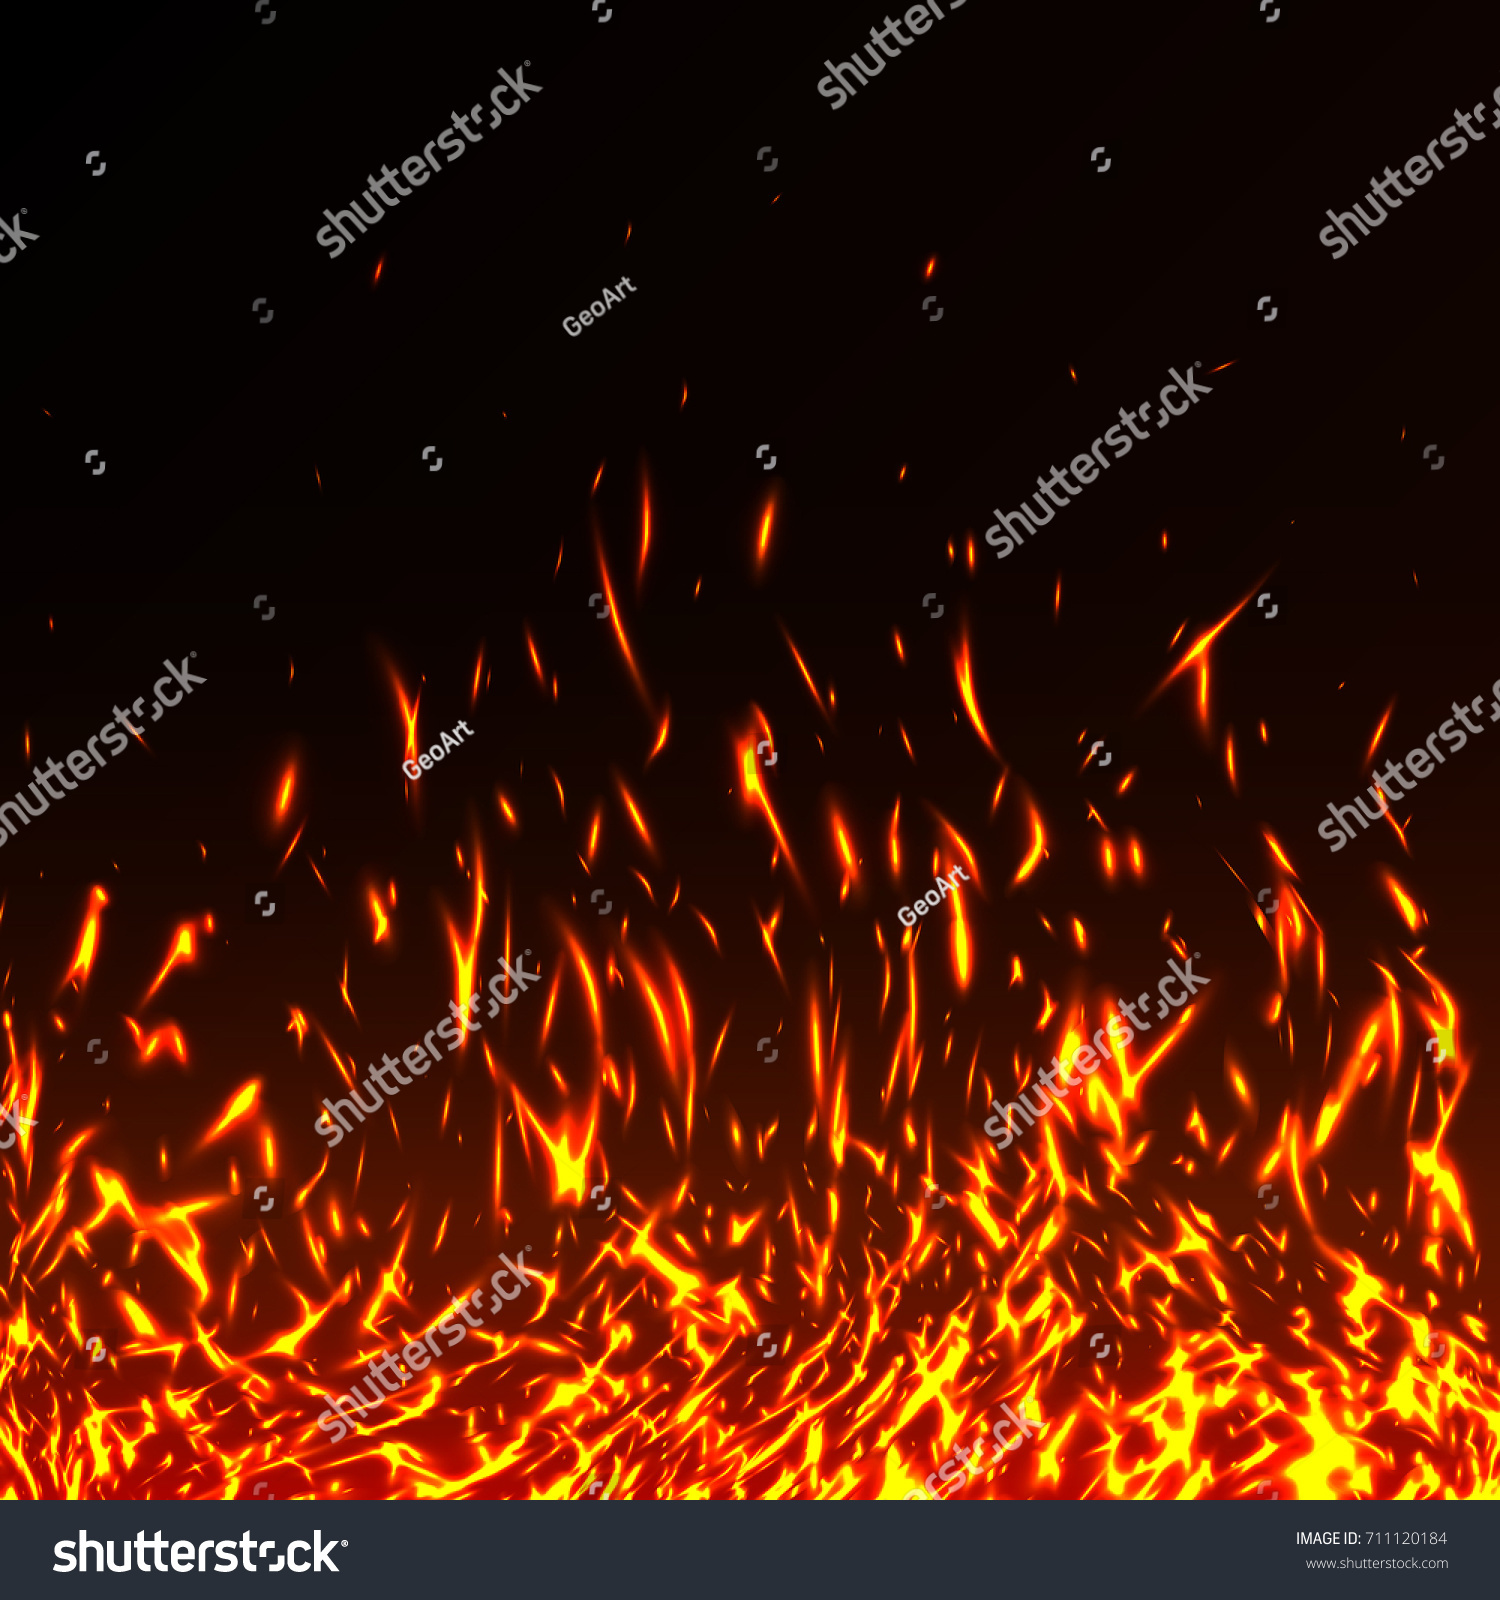 Fire Flames Sparks Isolated On Black Stock Photo (Photo, Vector ...